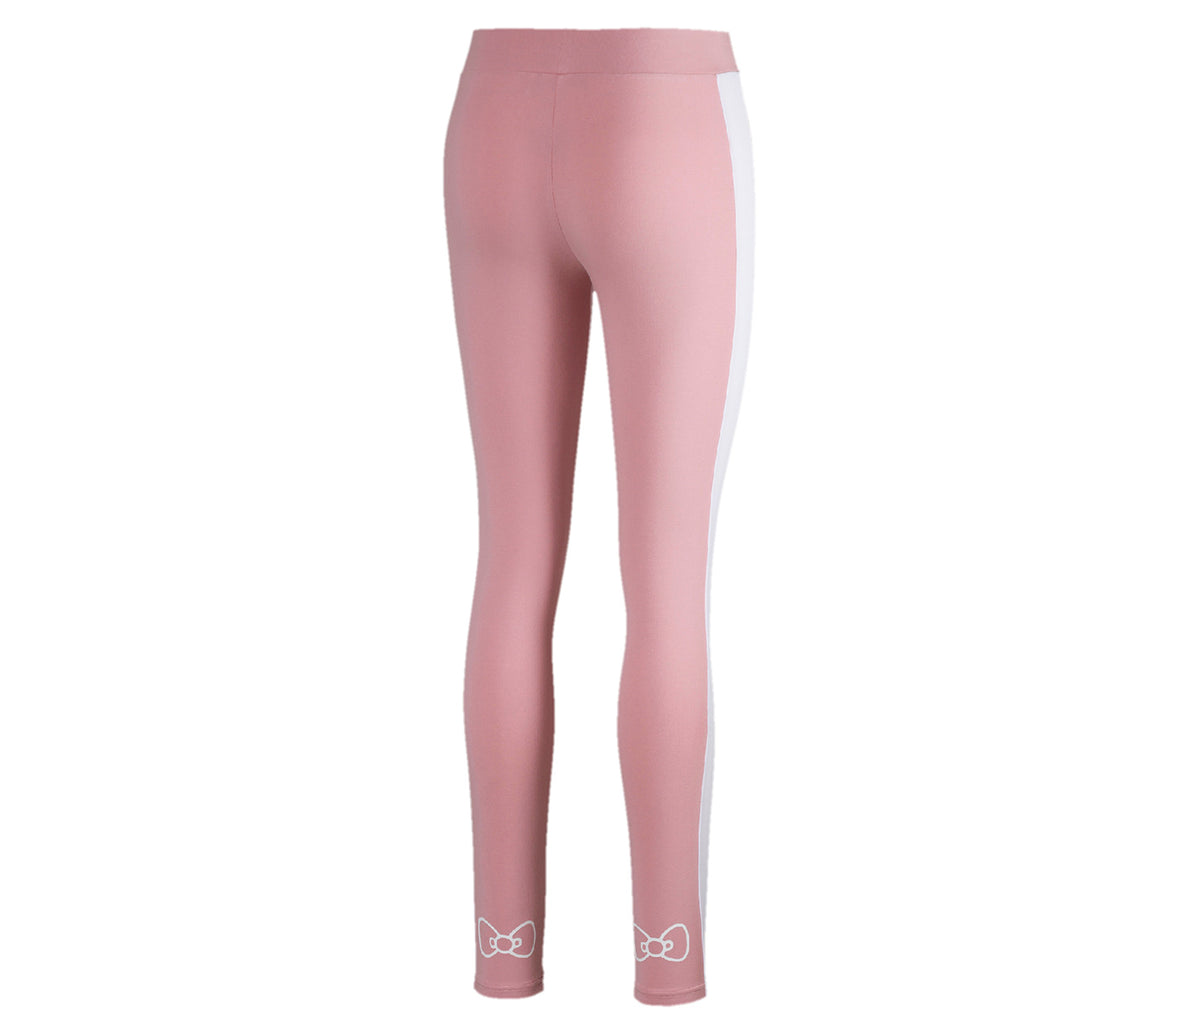 PUMA x Hello Kitty Leggings: Pink